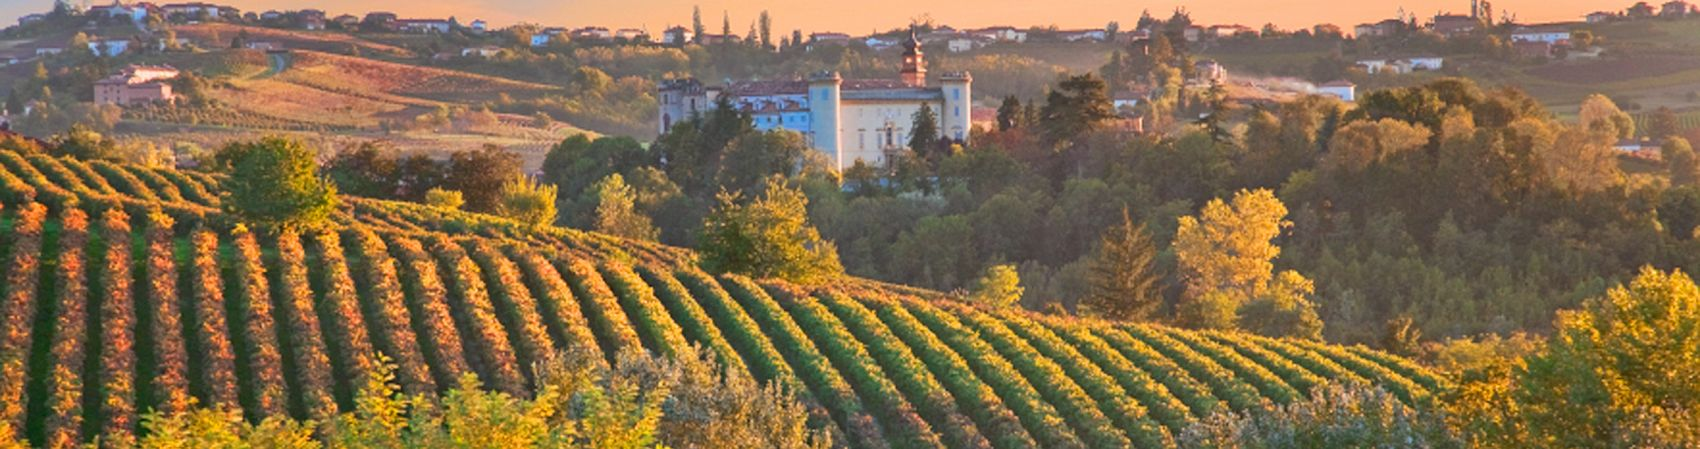 Best Chianti Wineries in Tuscany